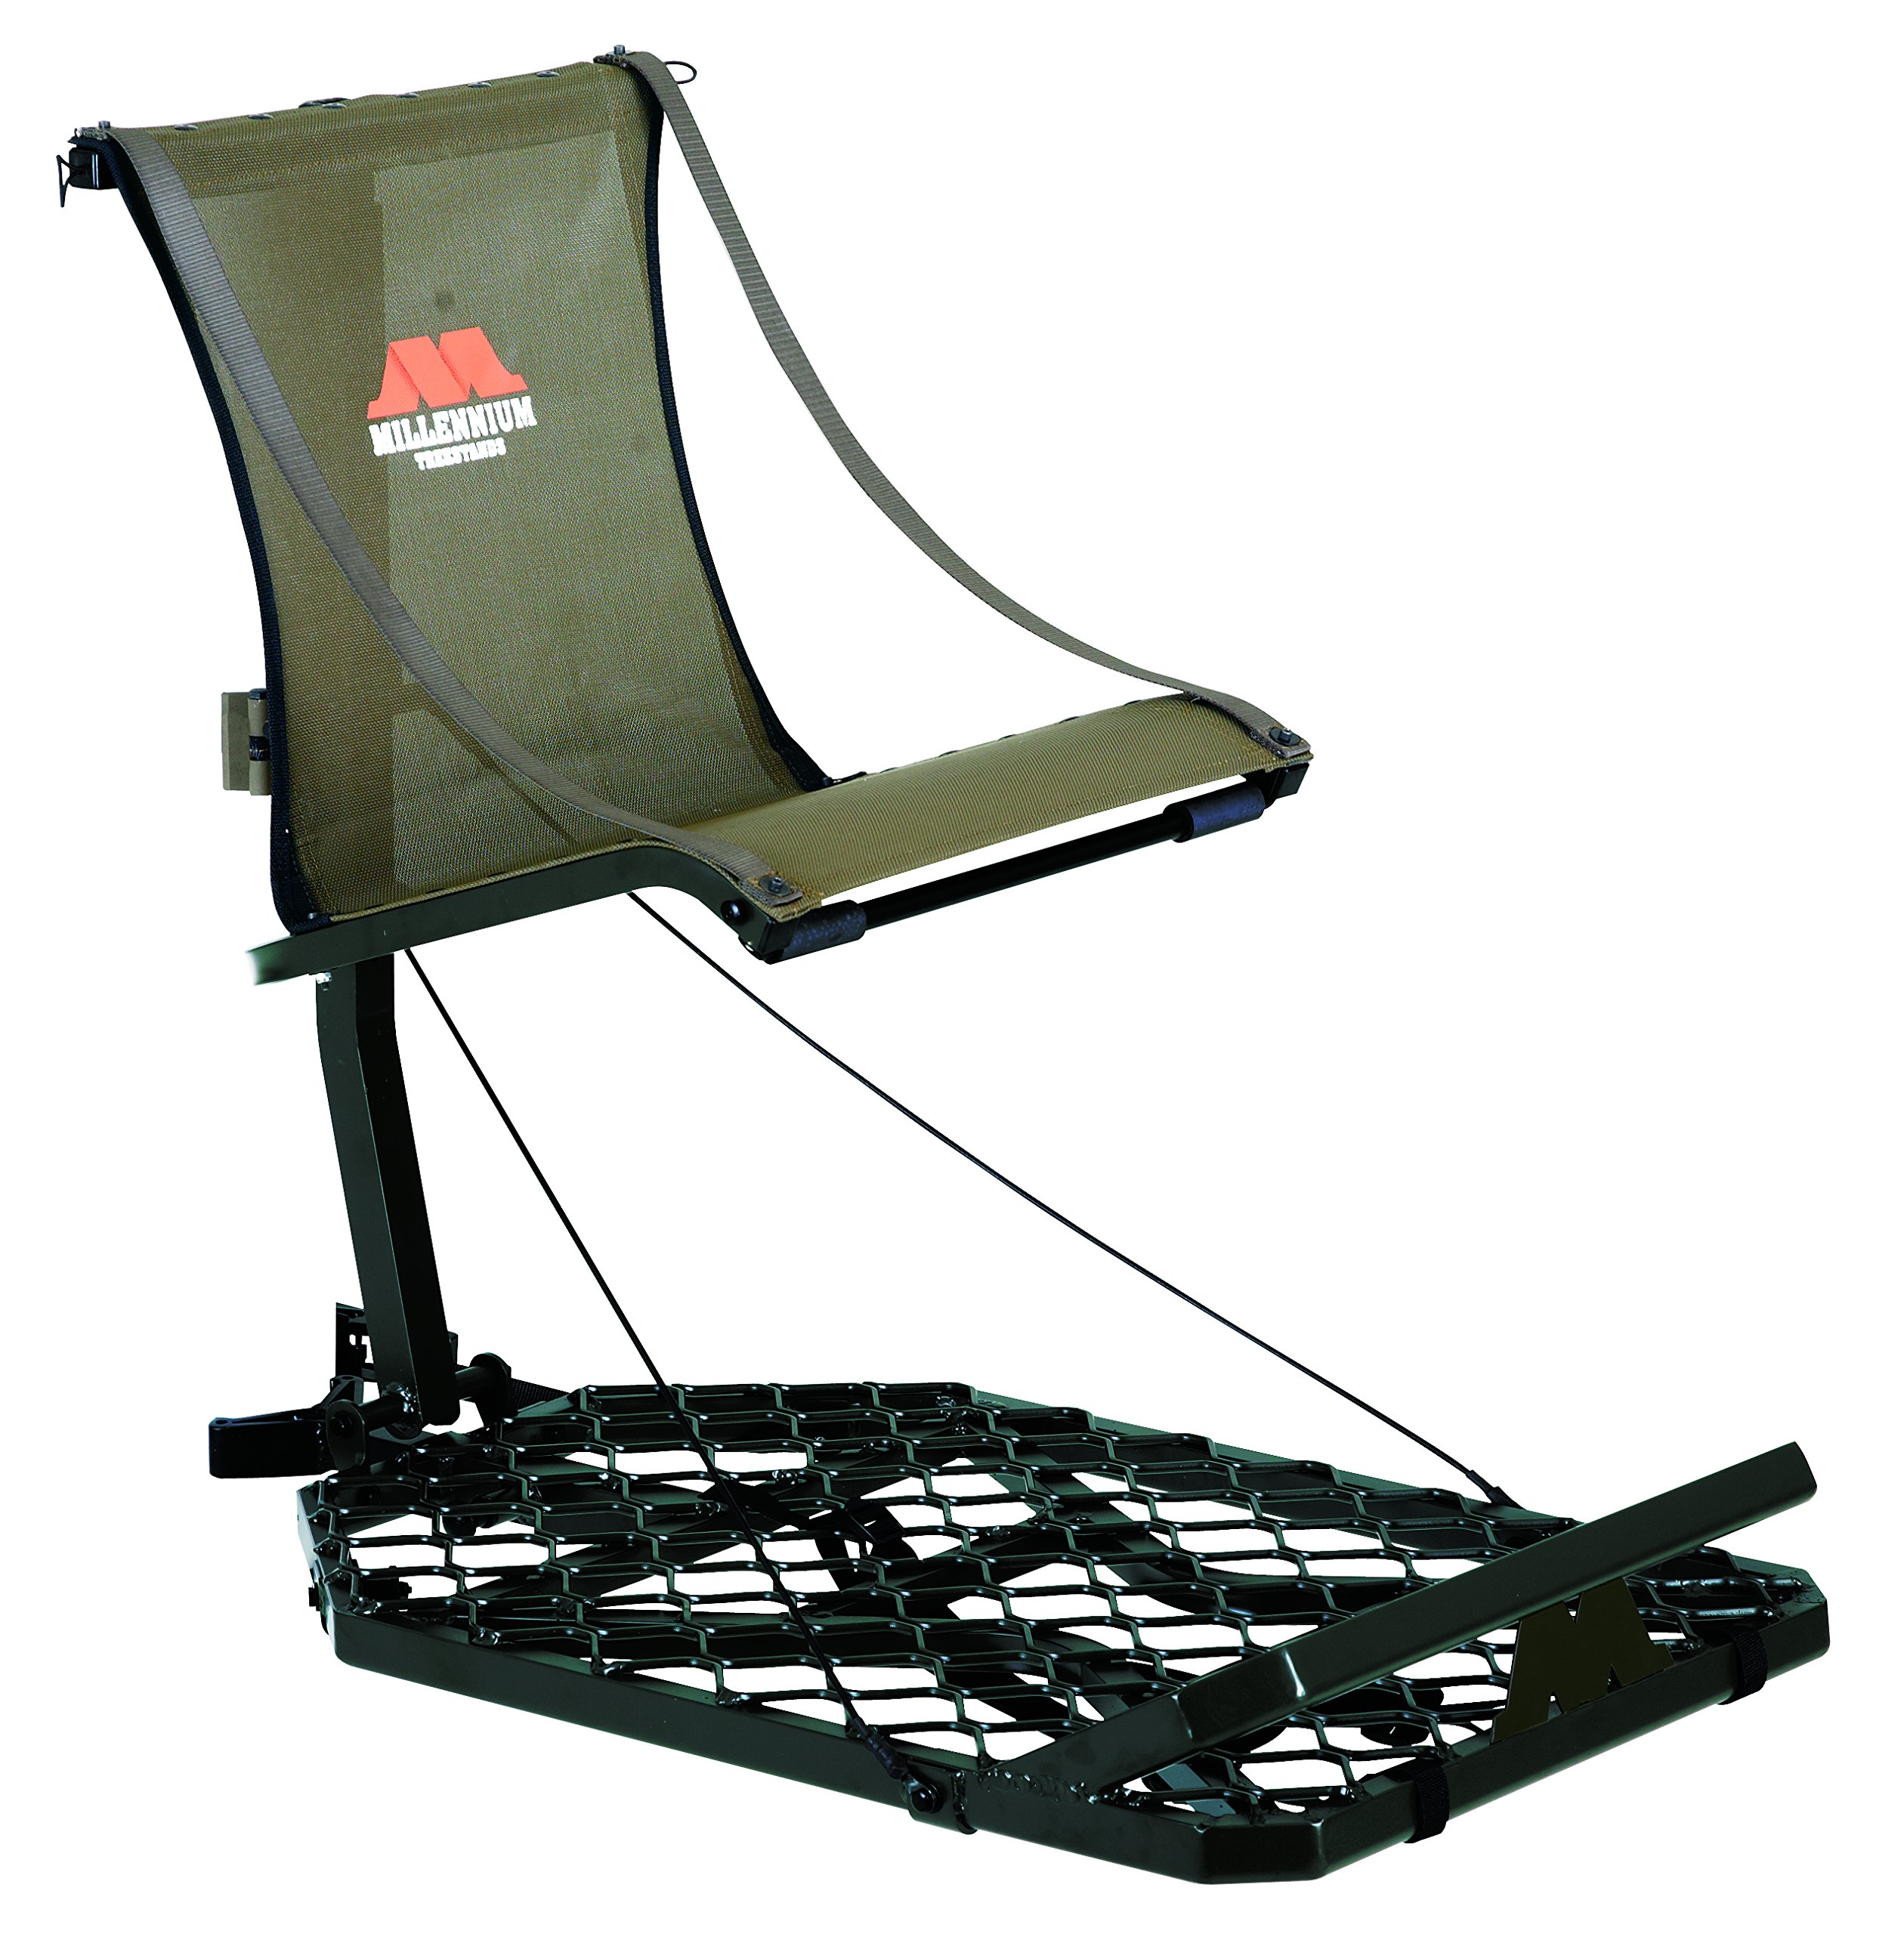 Millennium Treestands M150 Monster Hang-On Tree Stand (Includes SafeLink Safety Line) by Millennium Treestands